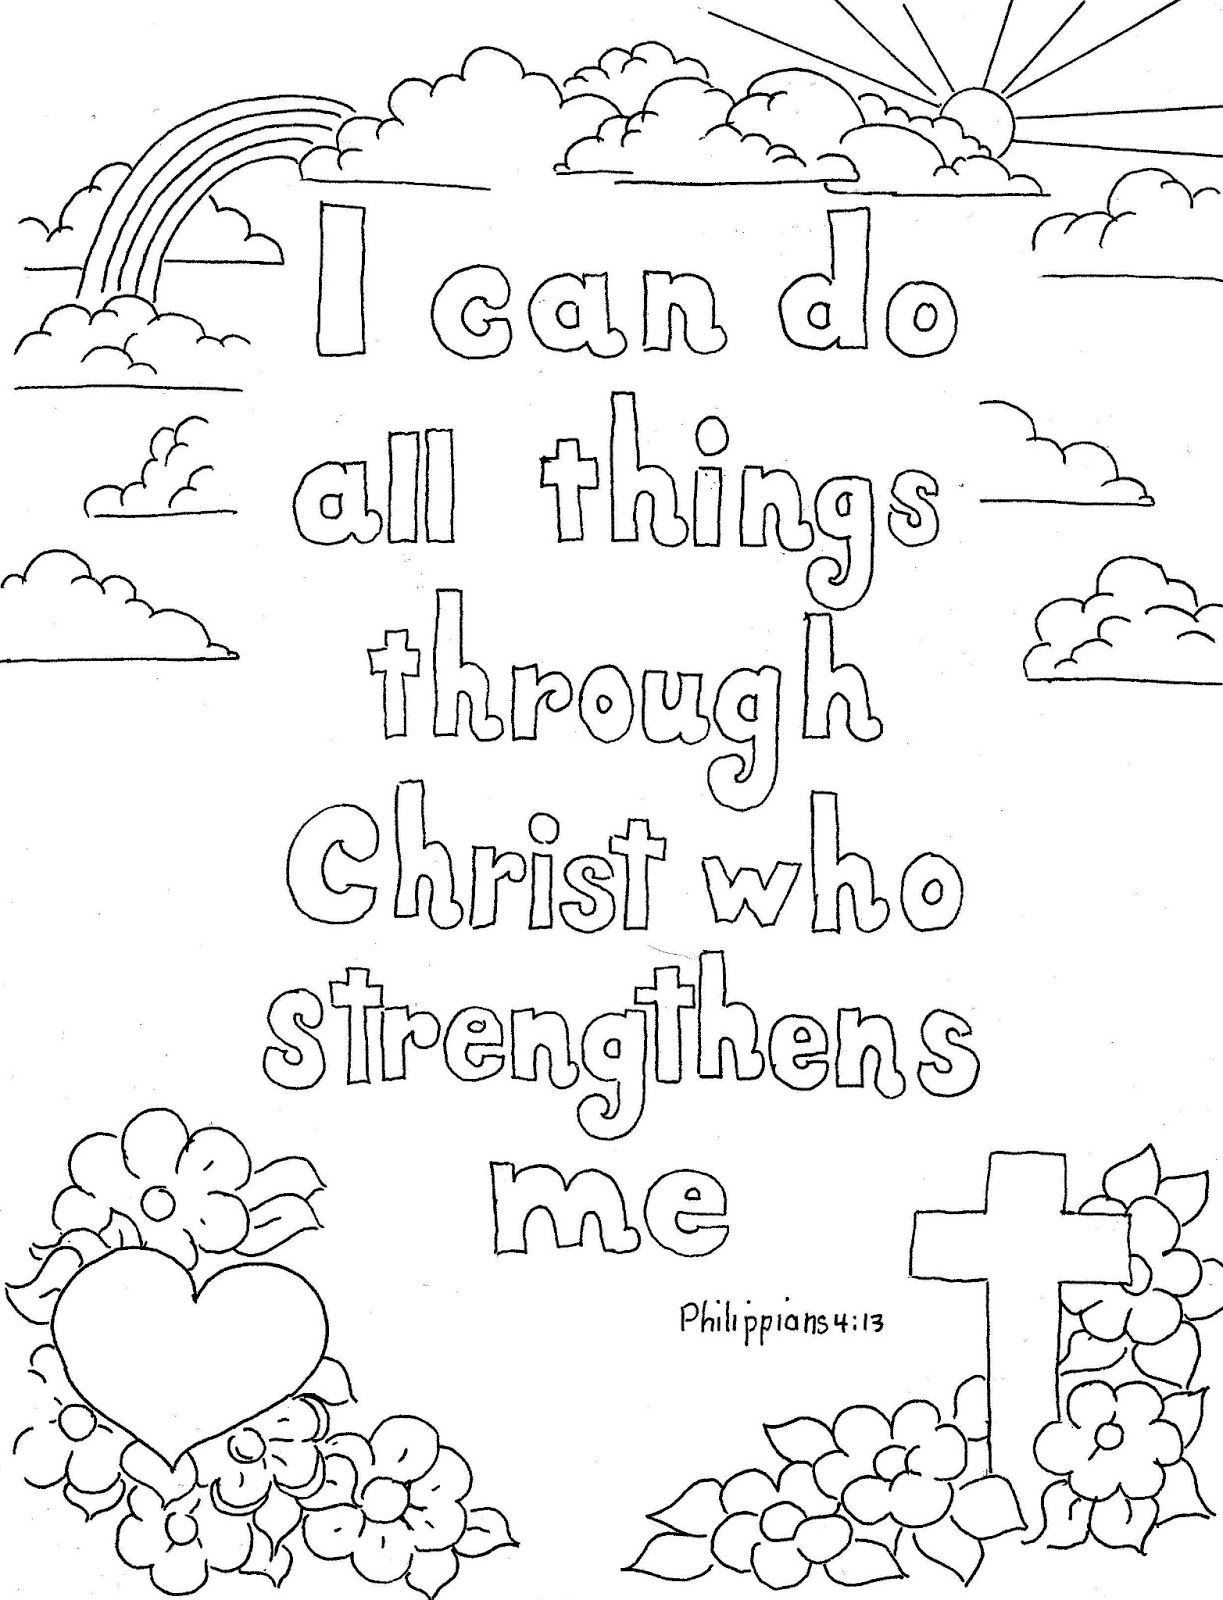 Childrens christian valentine coloring pages - Coloring Pages For Kids Great Biblical Truth To Share With Our Sponsored Children